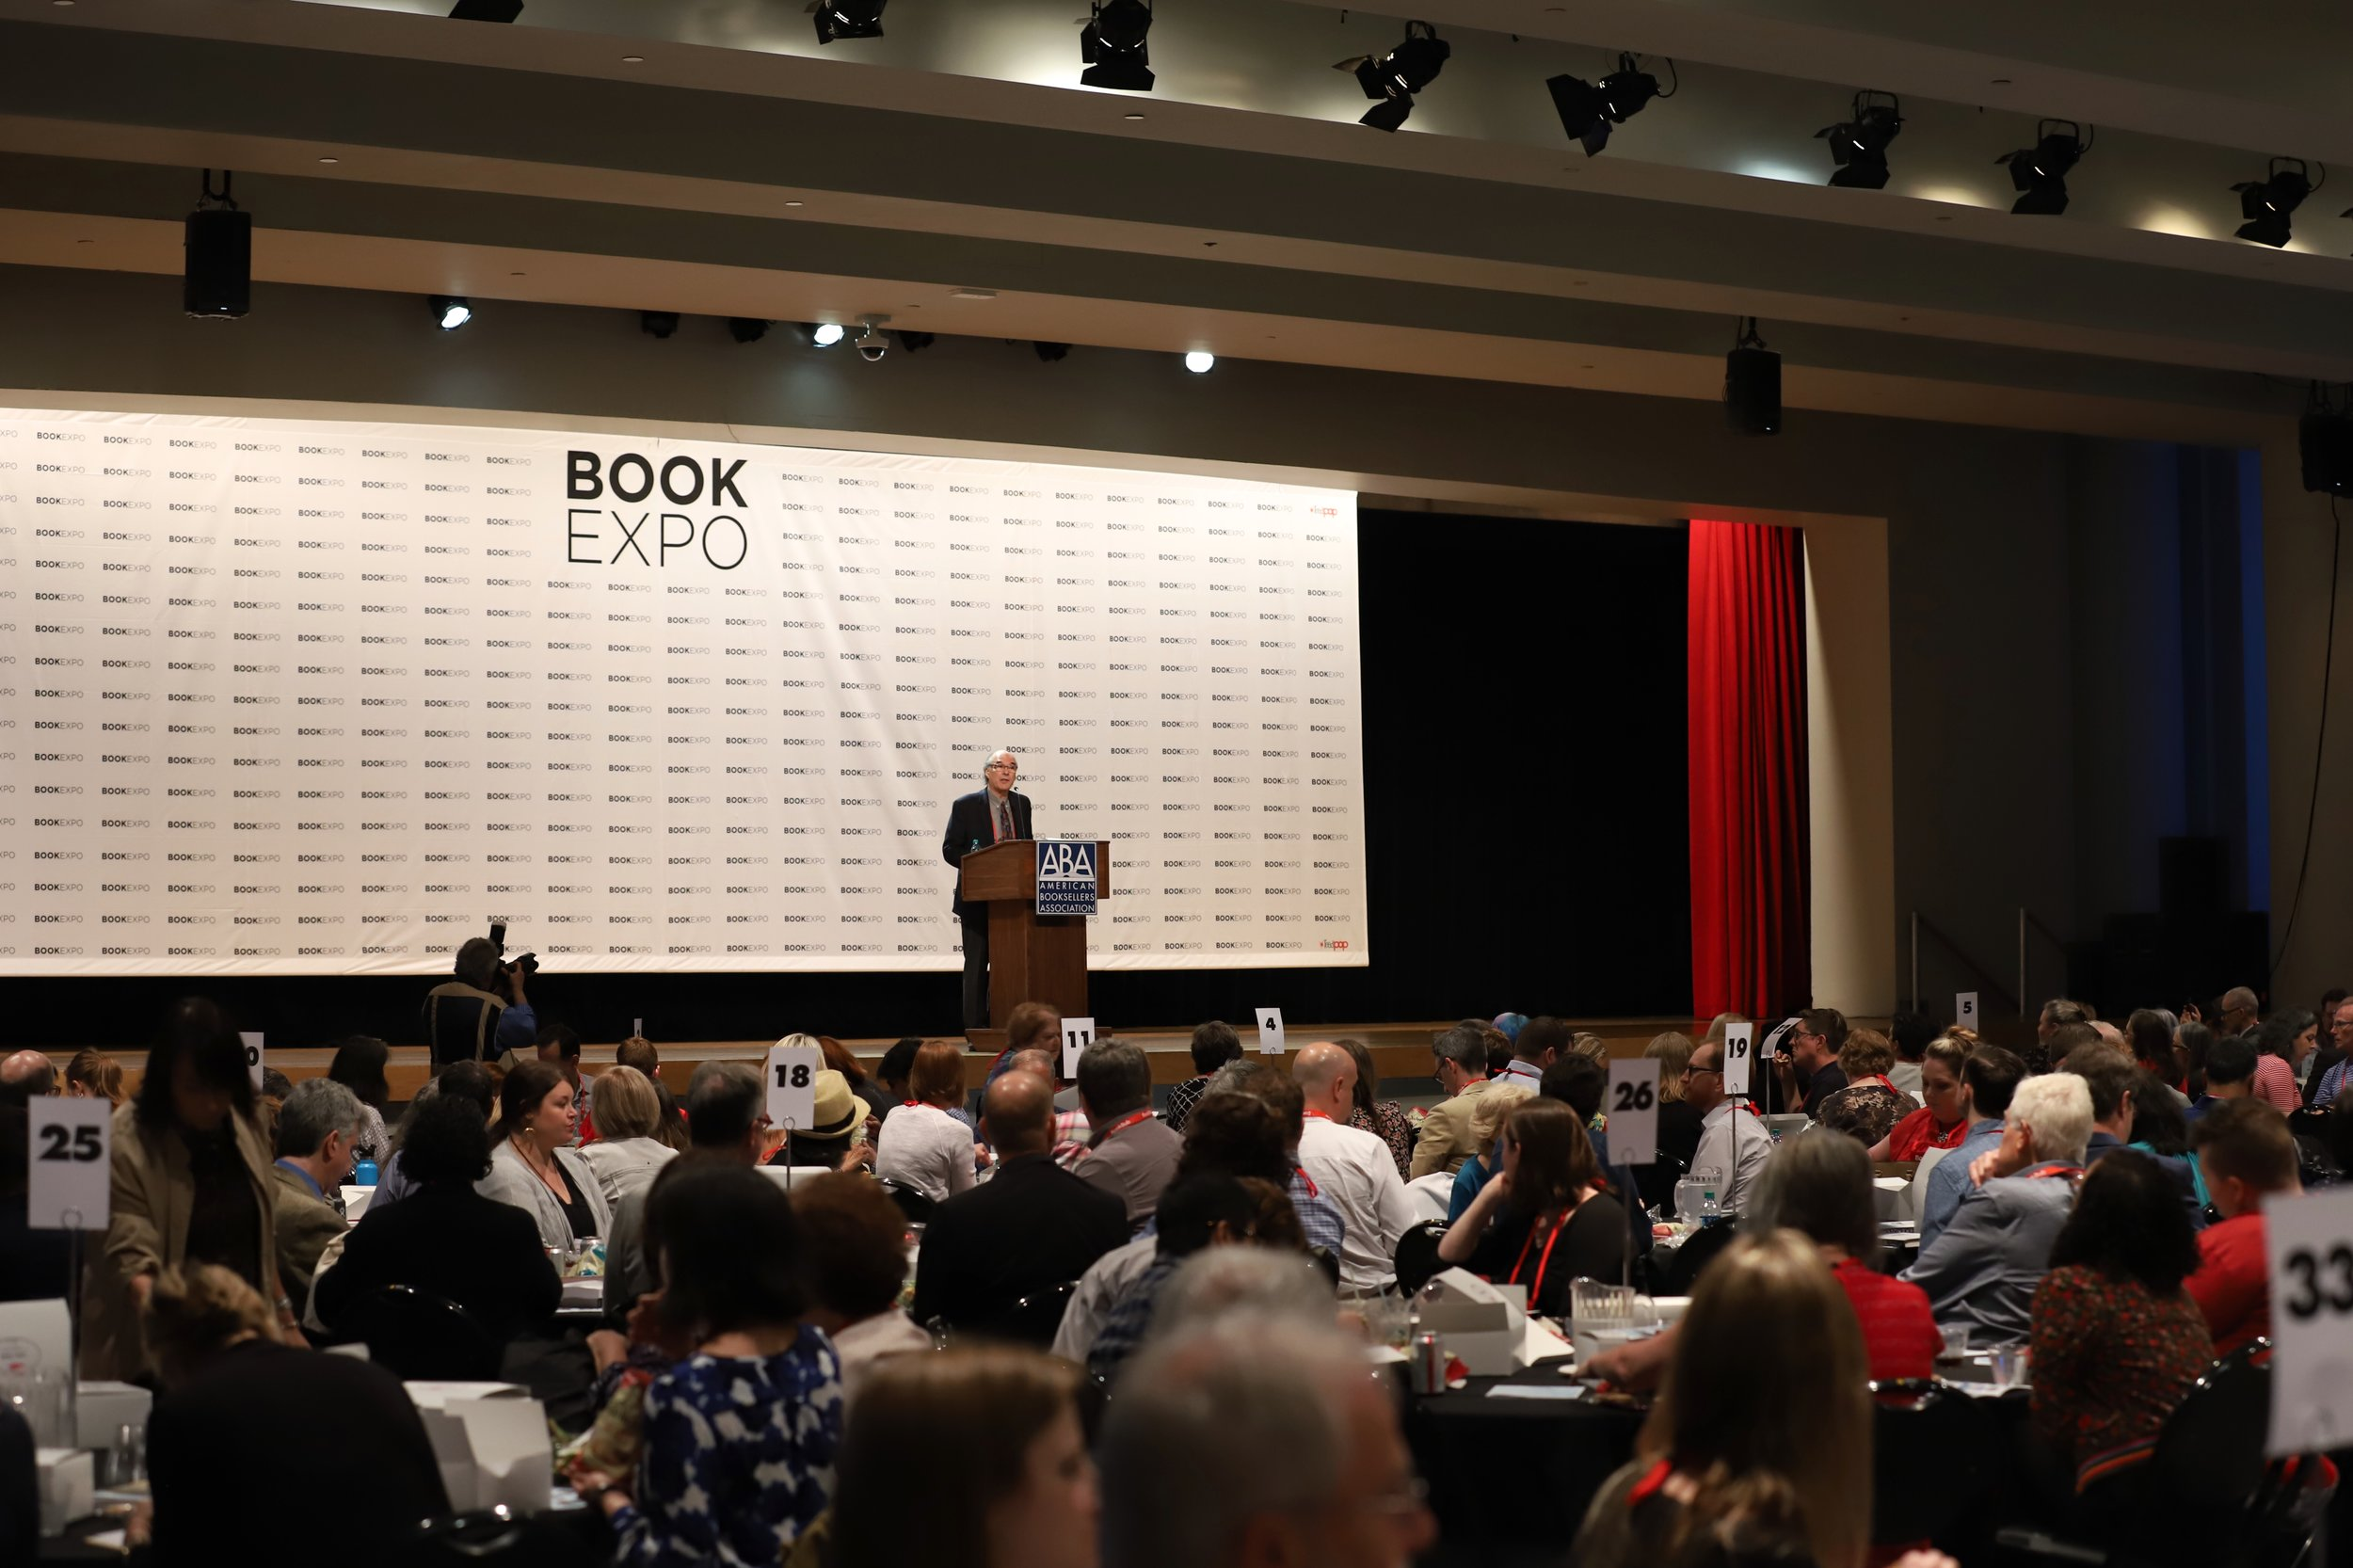 ABA CEO Oren Teicher speaks at Book Expo America. Event photography by Two Cats Communications.